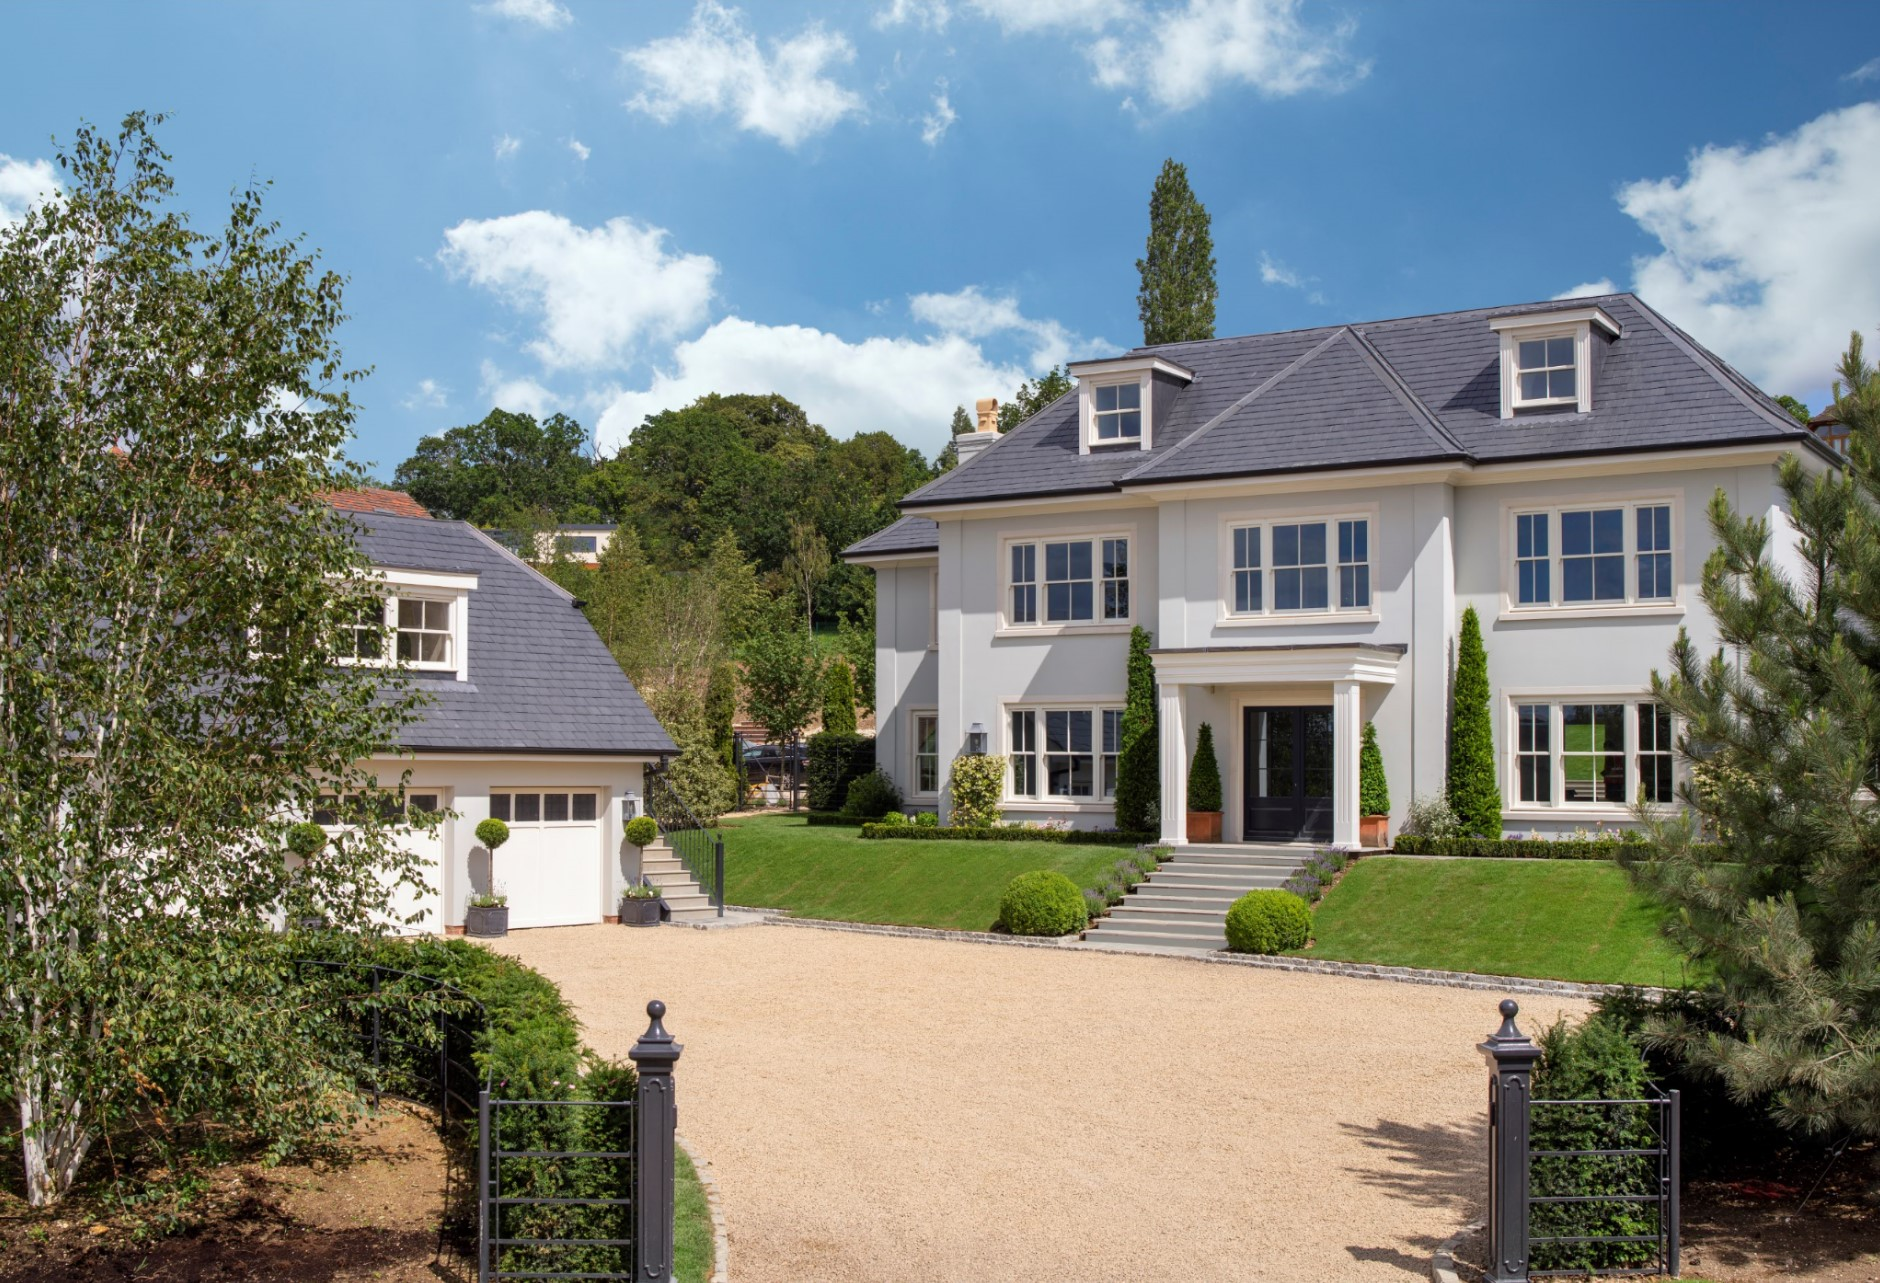 Luxury new white render home with large driveway